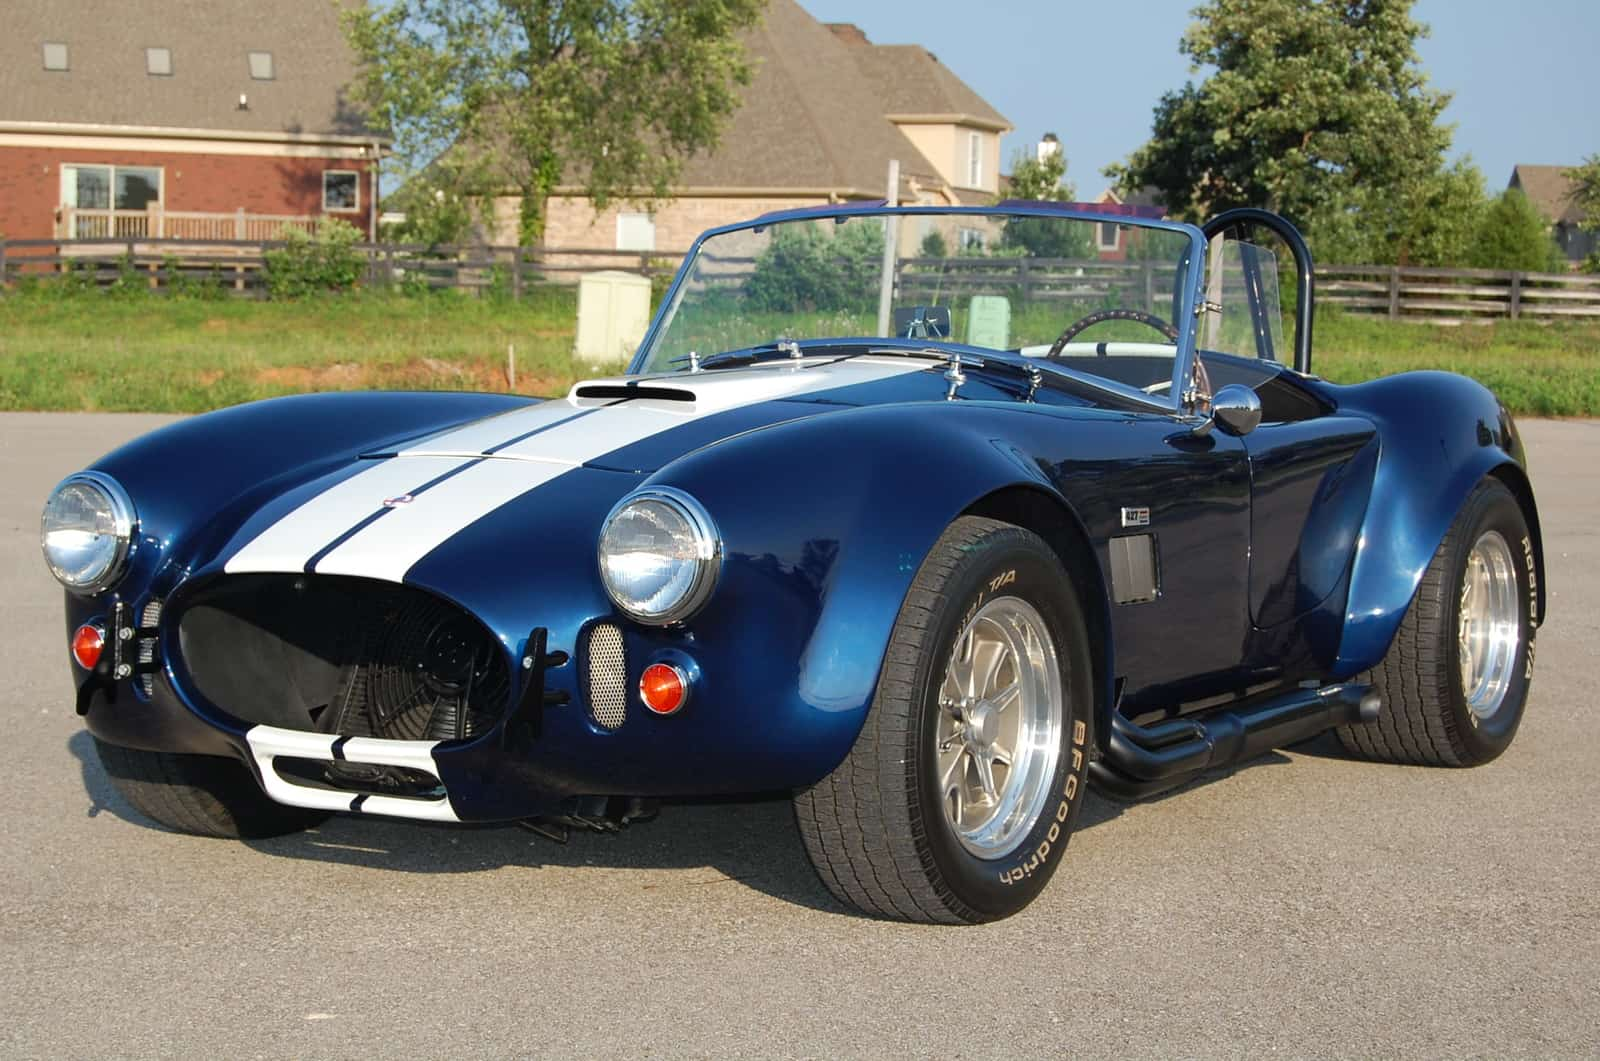 The Shelby Cobra is perhaps the most iconic American sports car ever made